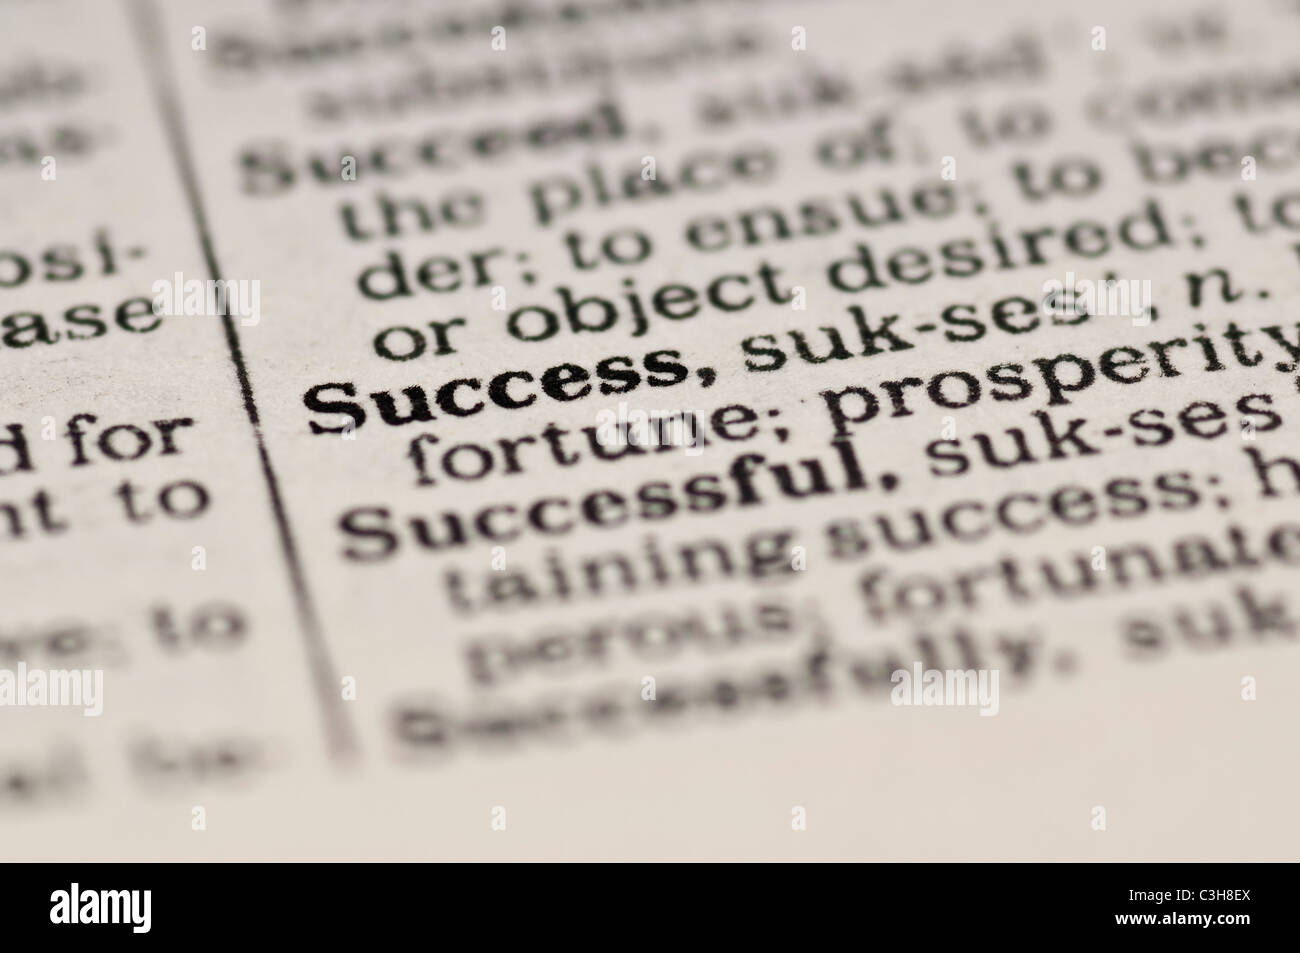 Extreme close up of the word SUCCESS found inside a dictionary - Stock Image